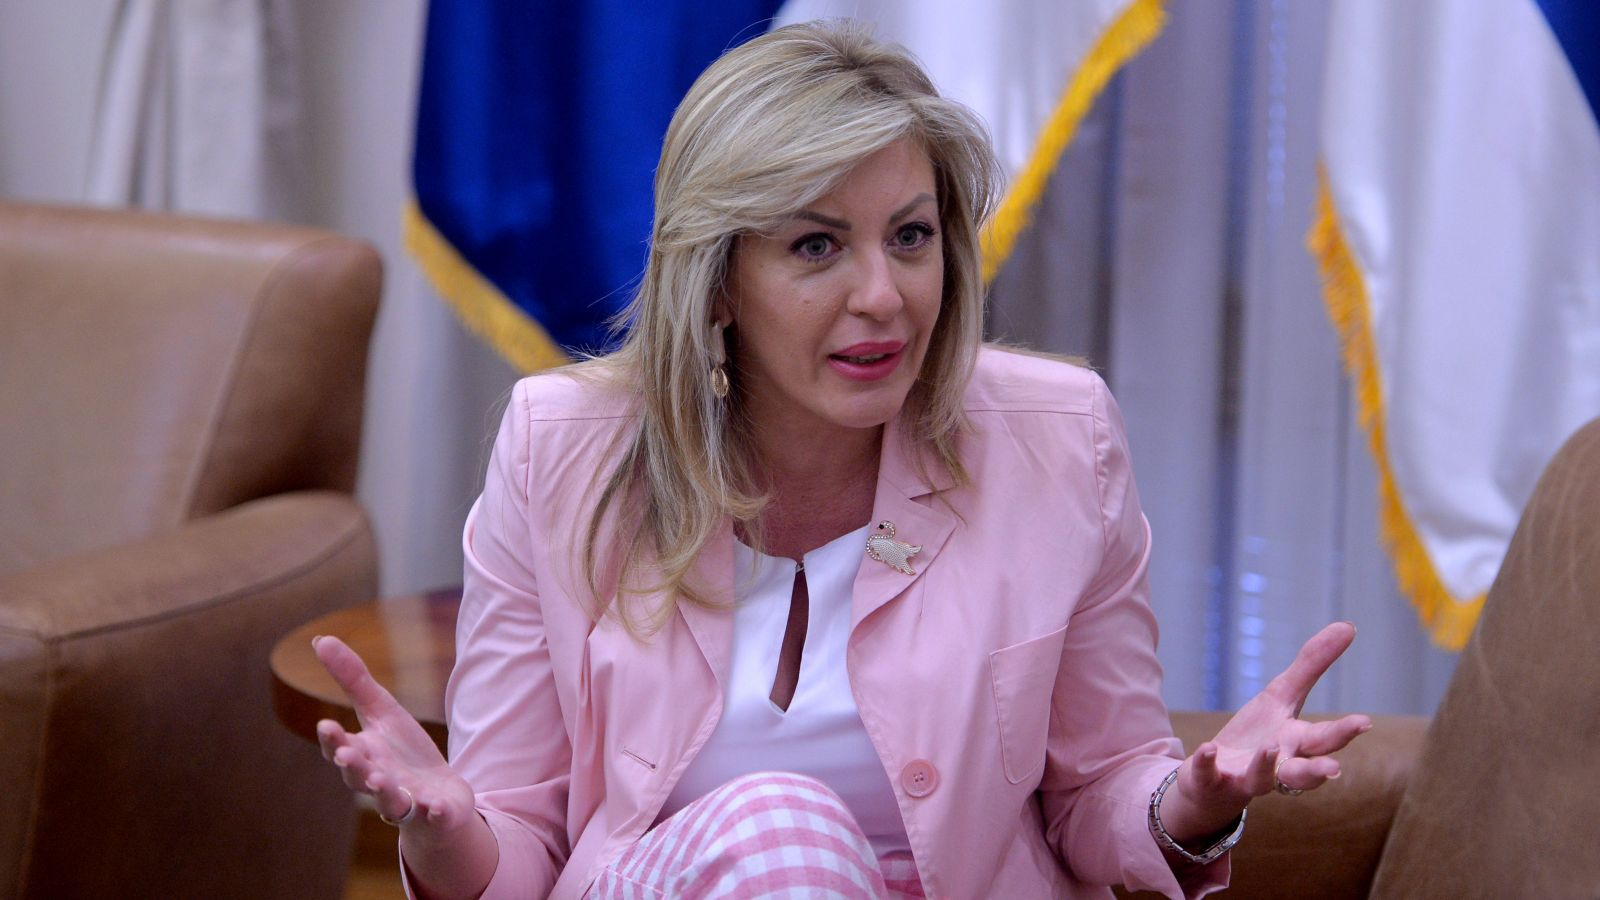 J. Joksimović: I expect Serbia to make progress during the German presidency